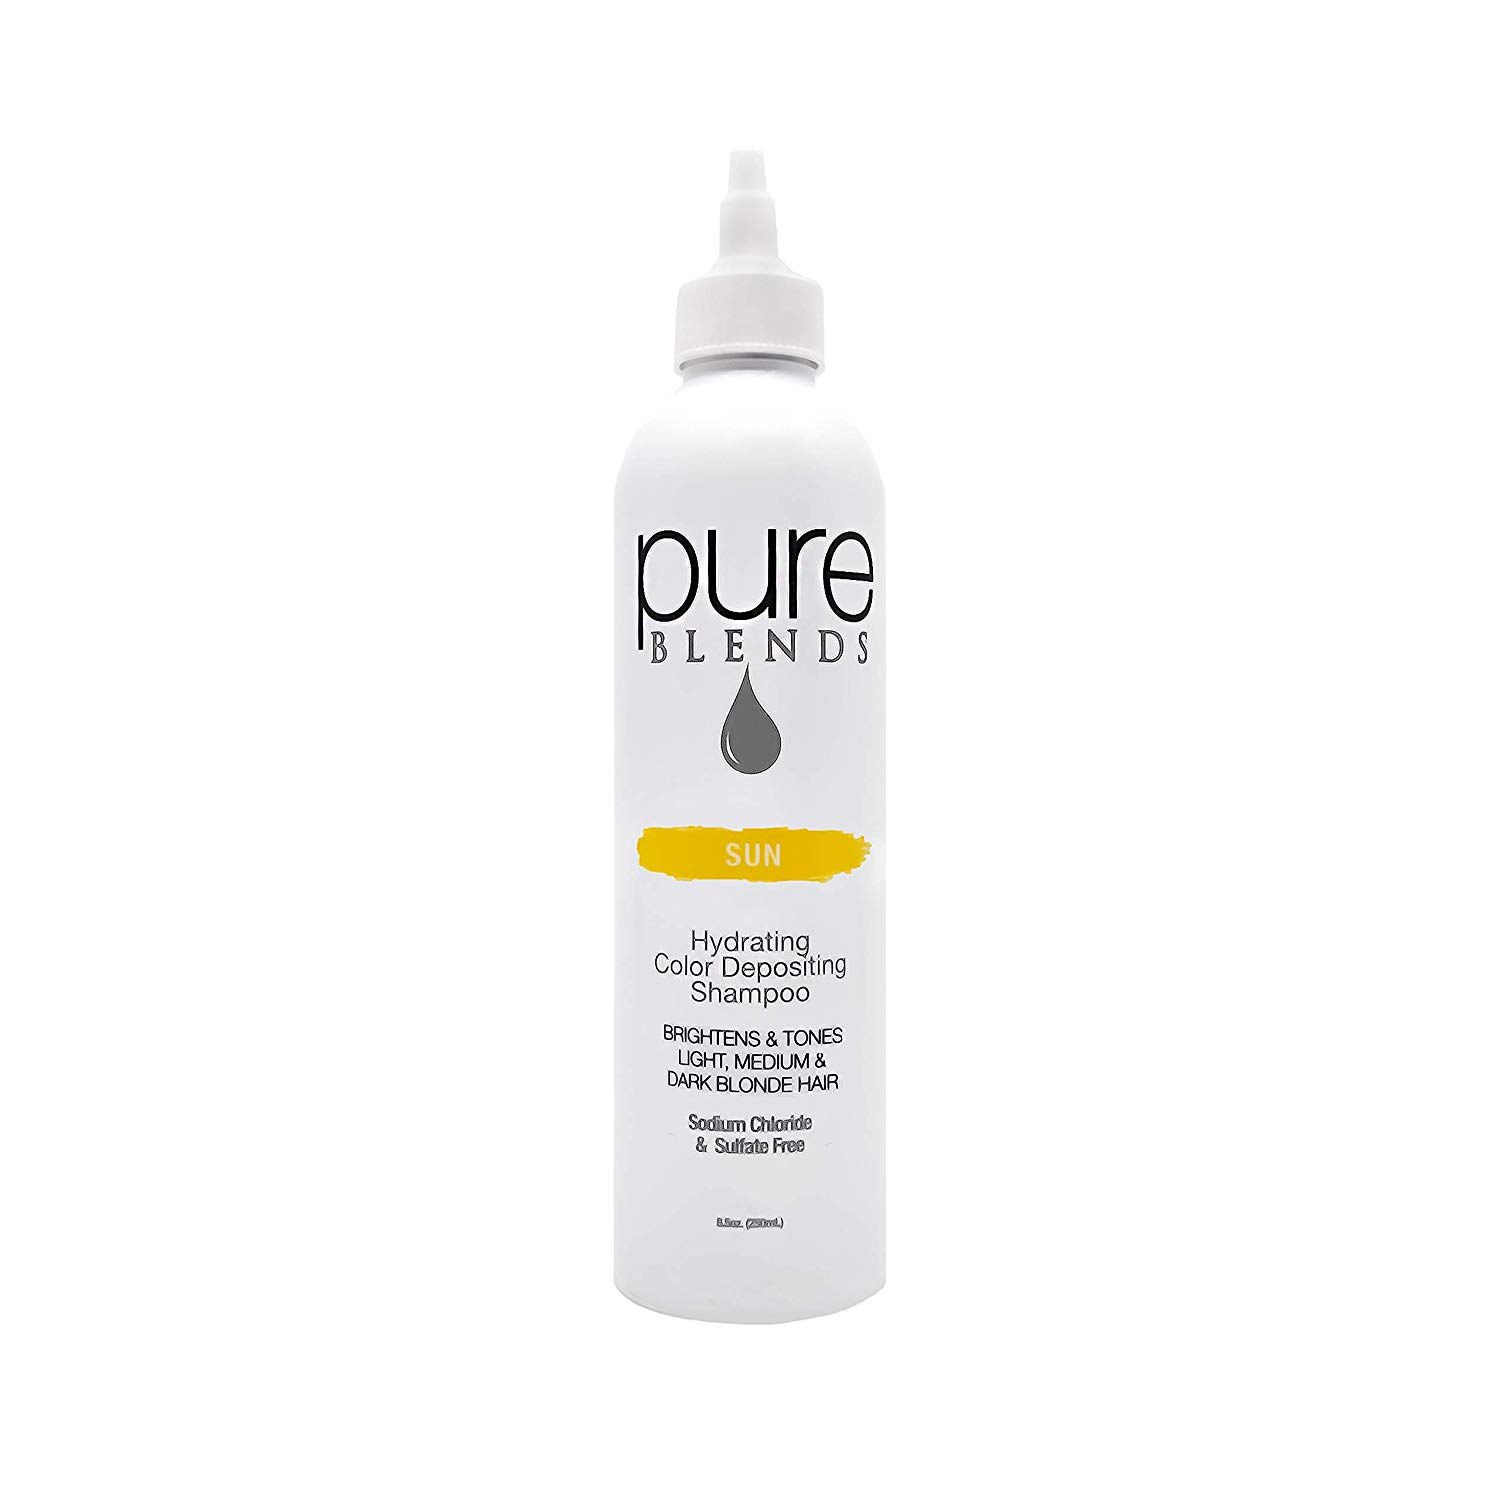 Pure Blends Hydrating Color Depositing Shampoo - Sun